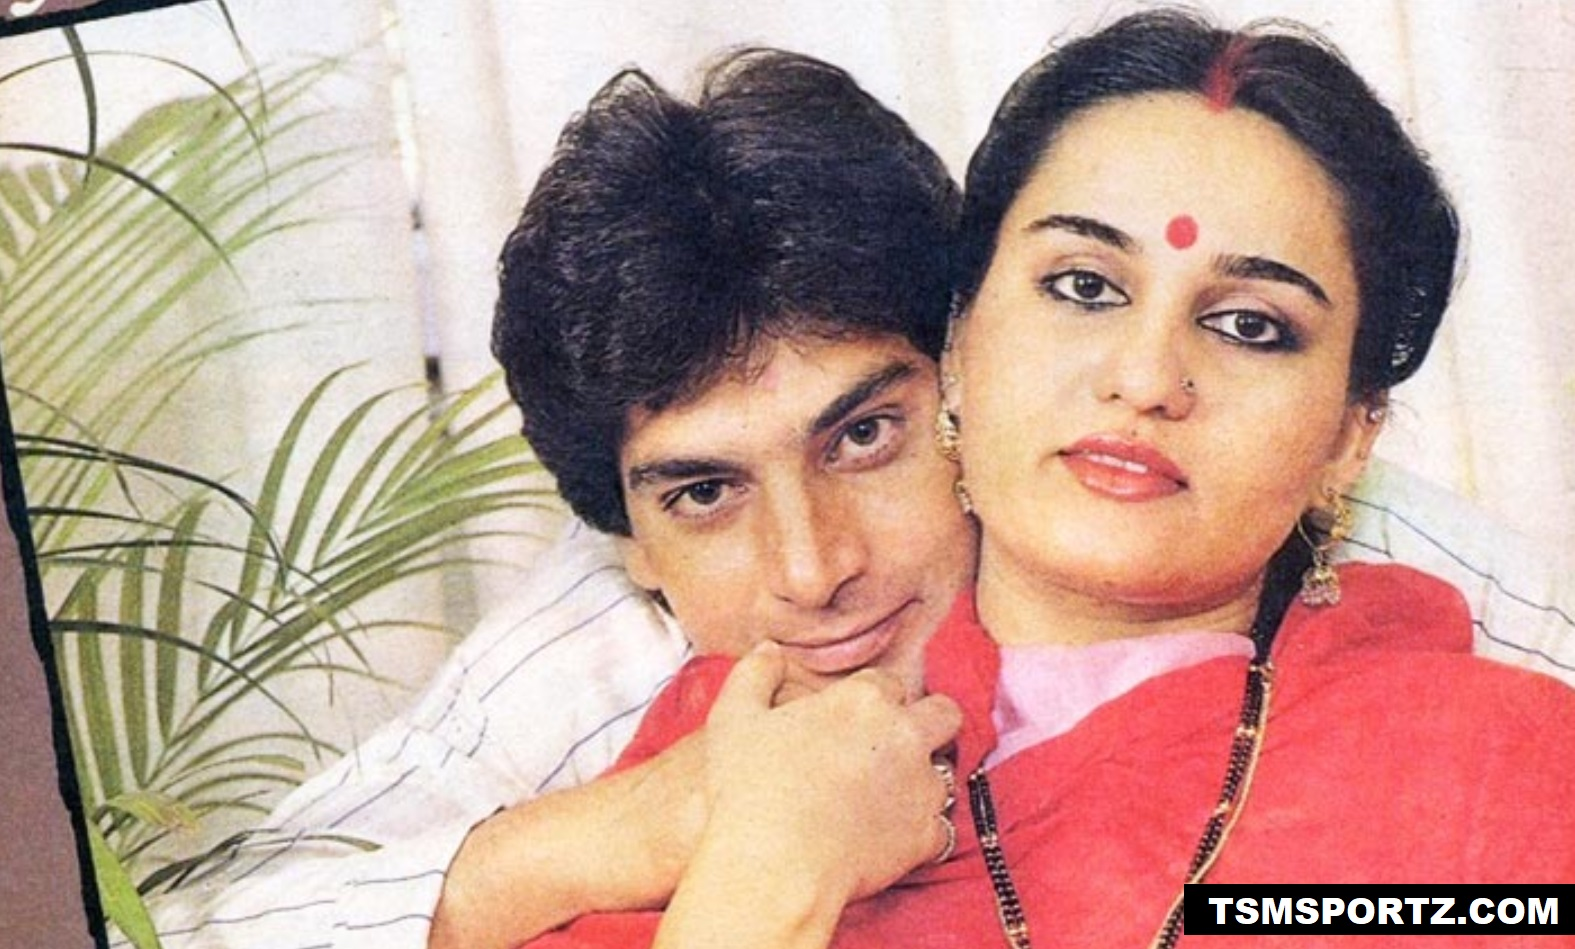 Mohsin Khan Pakistani cricketer married Reena Roy in 1983